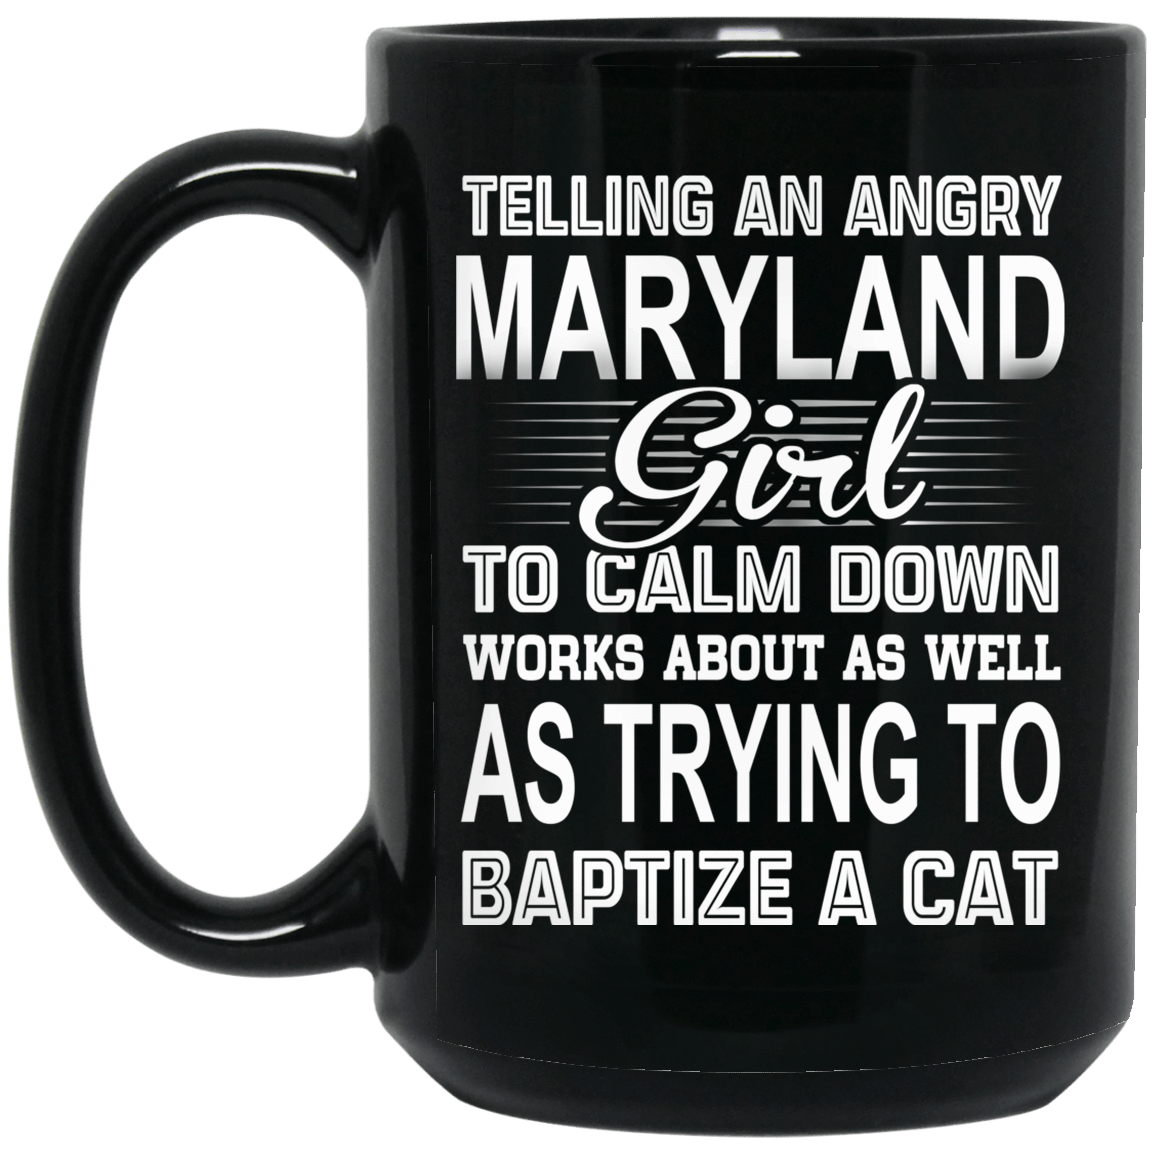 Telling An Angry Maryland Girl To Calm Down Works About As Well As Trying To Baptize A Cat Mug 1066-10182-76151638-49311 - Tee Ript